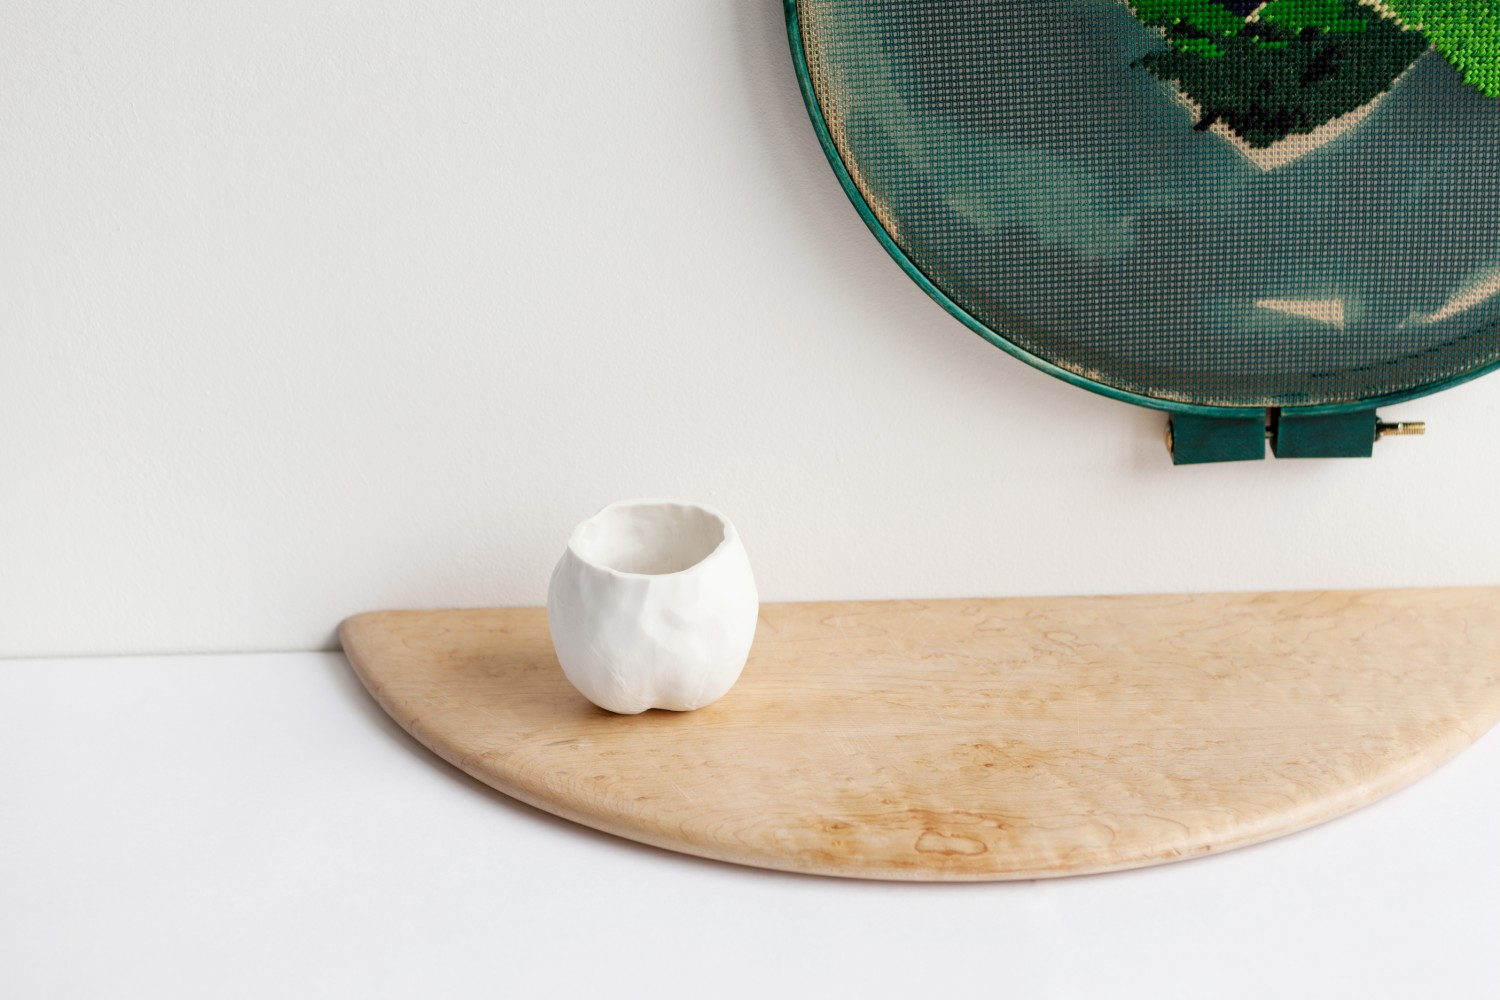 Have you seen this cup? It could be anywhere here, really. Bethan Lloyd Worthington Many a slip, Marsden Woo Gallery